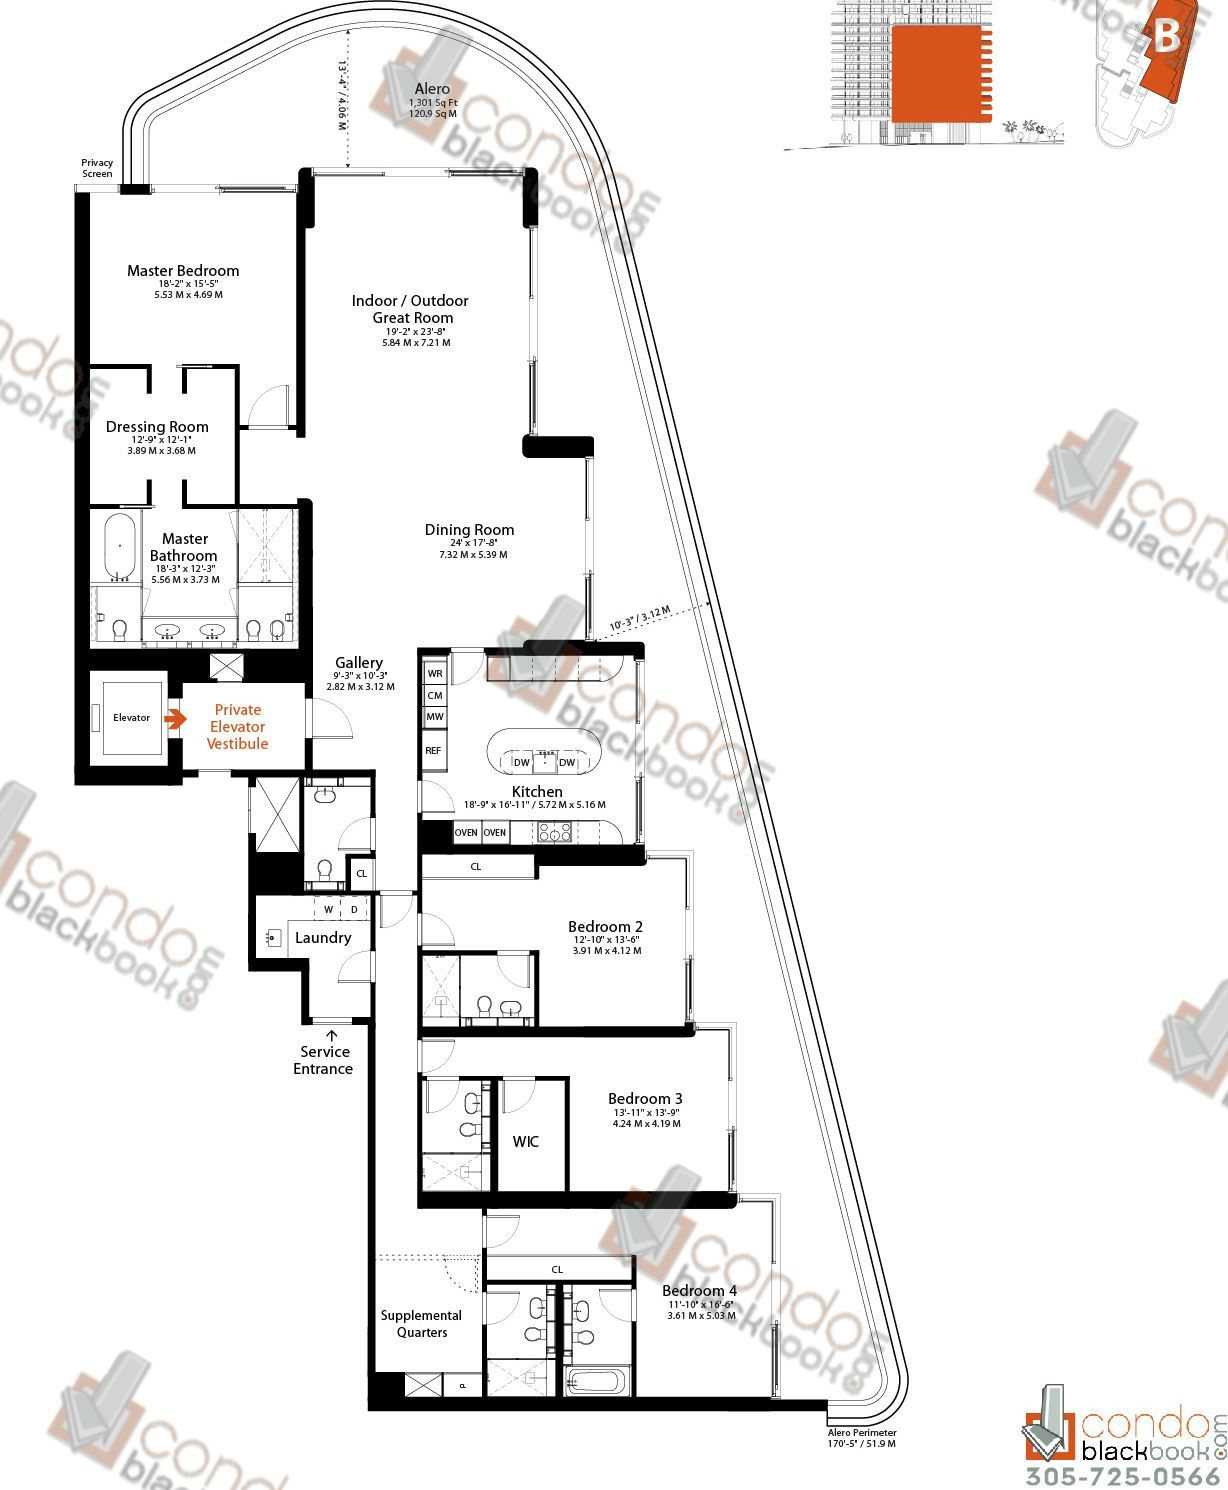 Faena House Site Plan And Floor Plans In Miami Beach Miami Faena House Floor Plans Beach House Plans